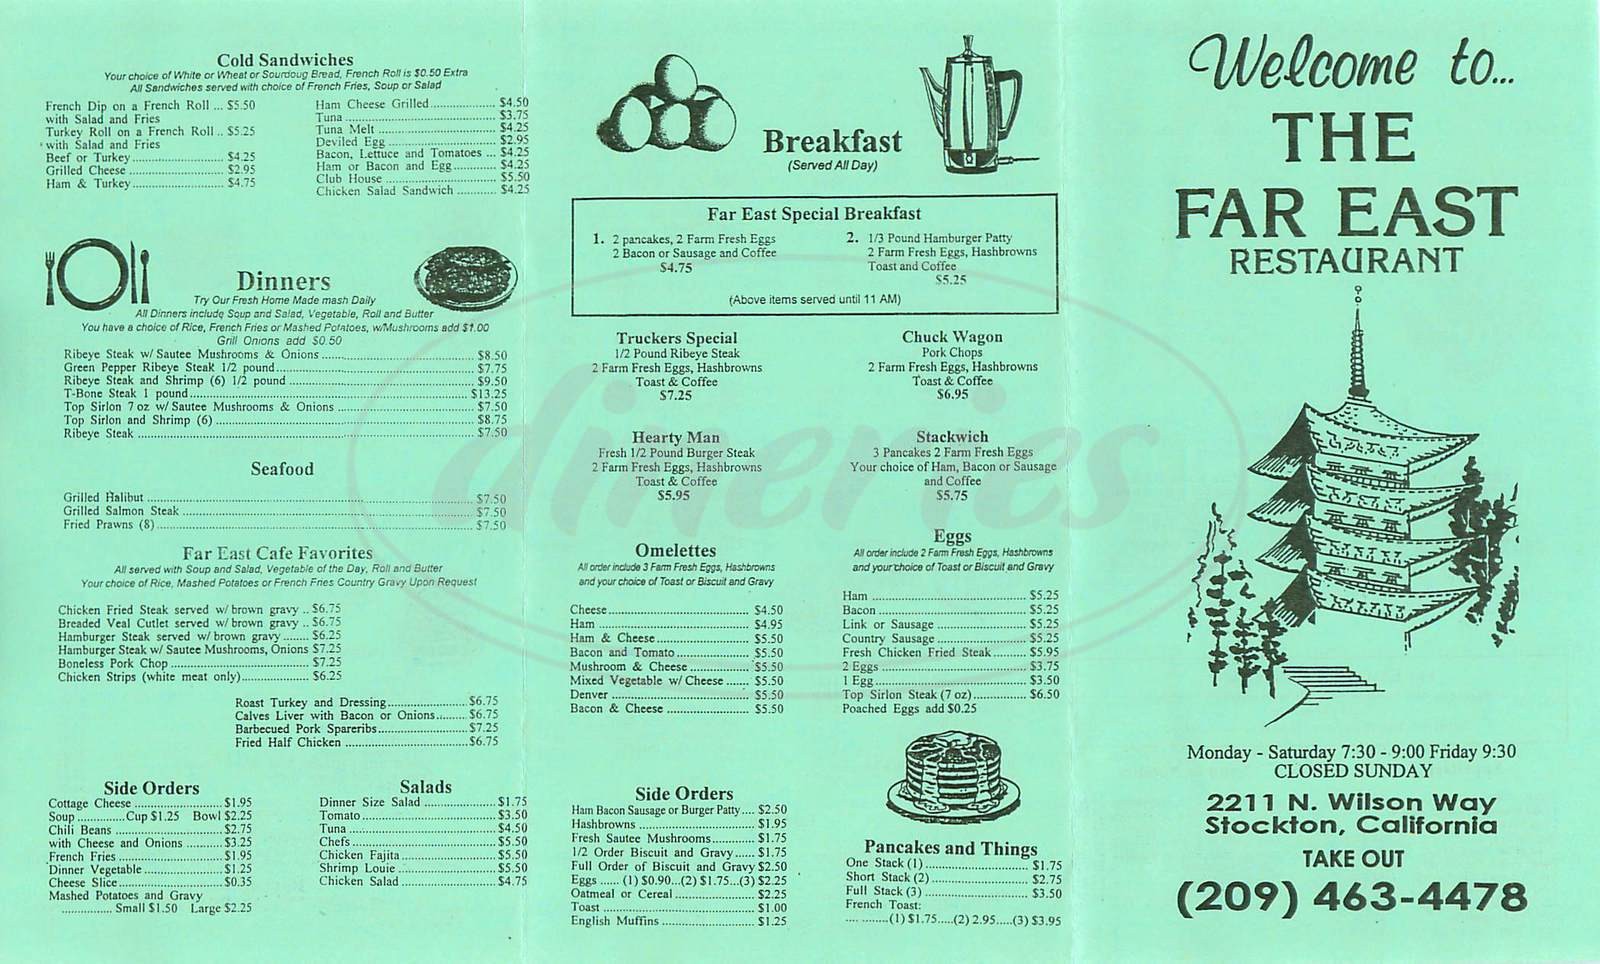 menu for Far East Restaurant